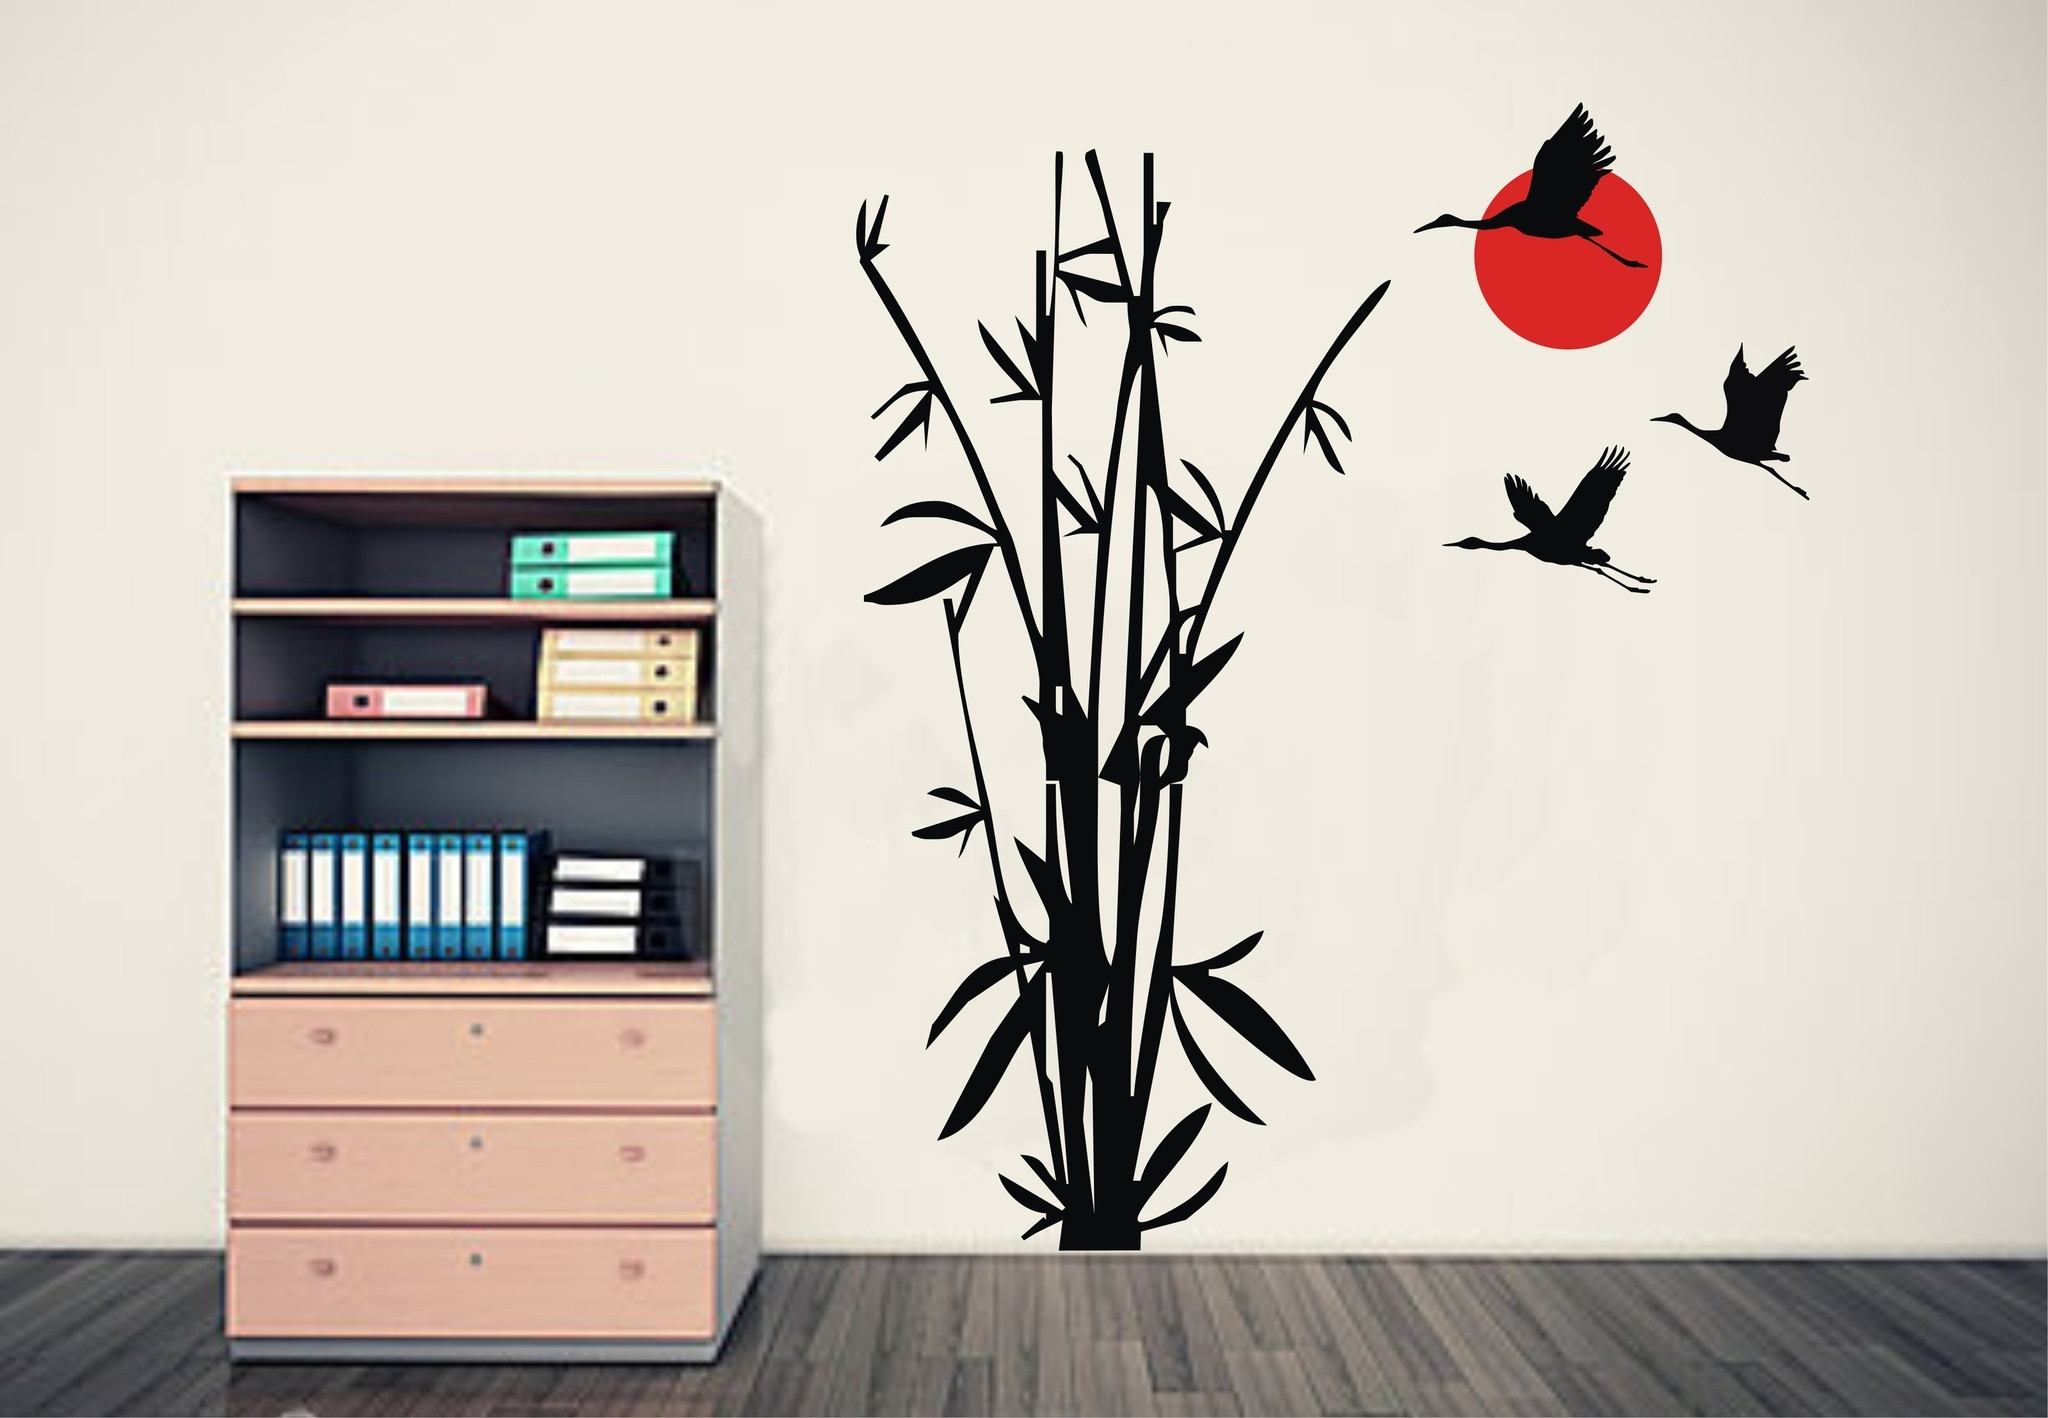 Popular Wall Art Designs Intended For Wall Art Designs: Bamboo Wall Art Bamboo And Flying Cranes Bamboo (View 11 of 15)